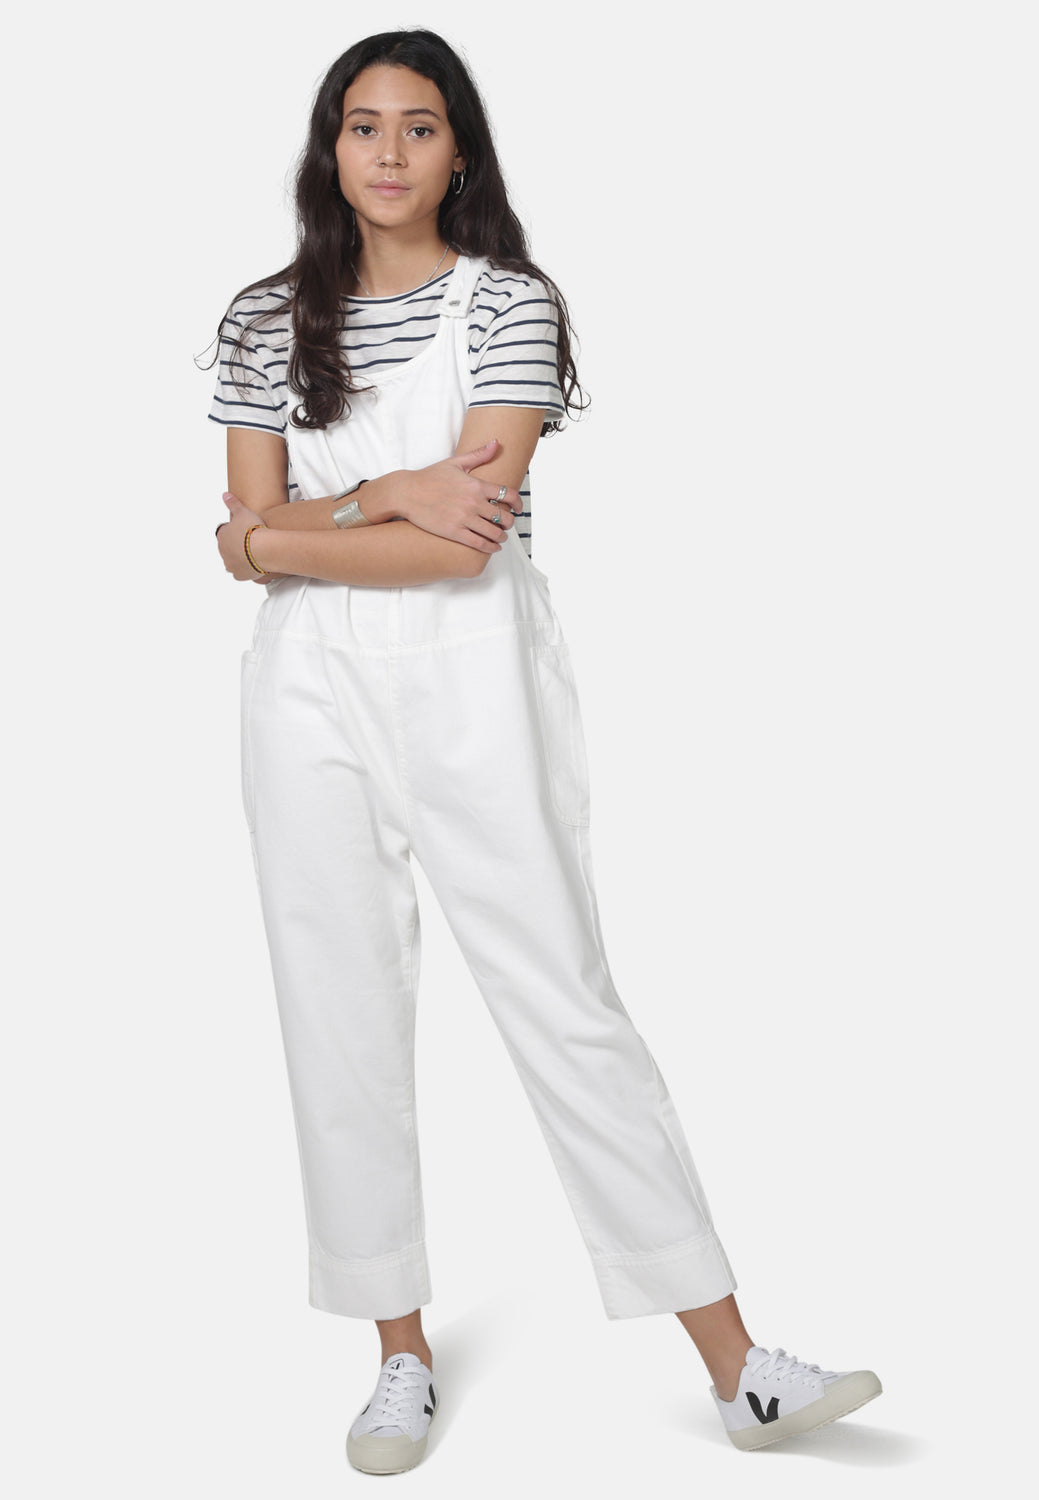 DUNGAREES // Organic Overall Dungarees in White Denim - Monkee Genes Organic Jeans Denim - Women's Dungarees Monkee Genes Official  Monkee Genes Official